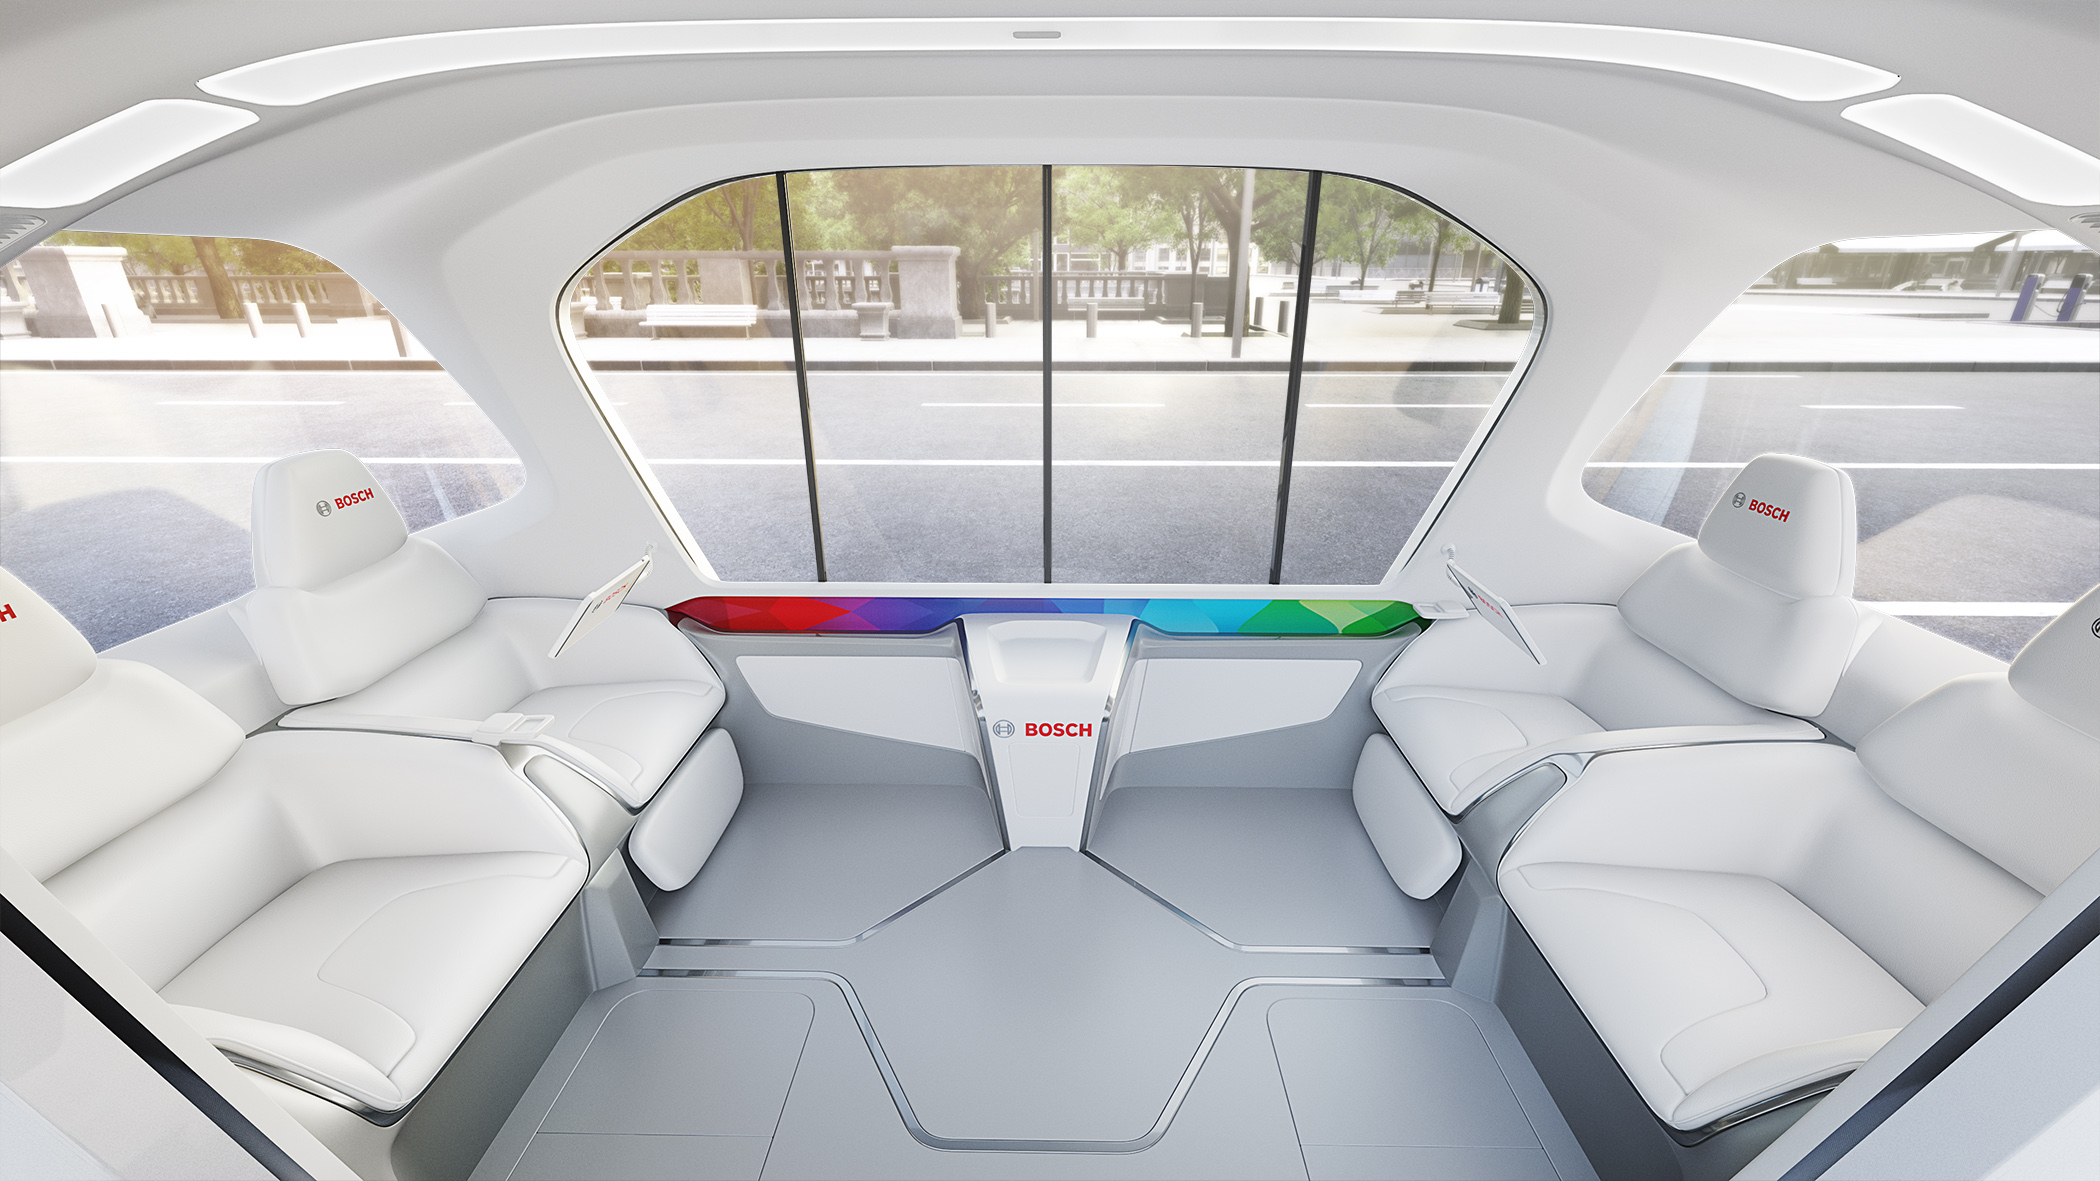 Debut of Bosch's new concept shuttle at CES 2019 in Las Vegas